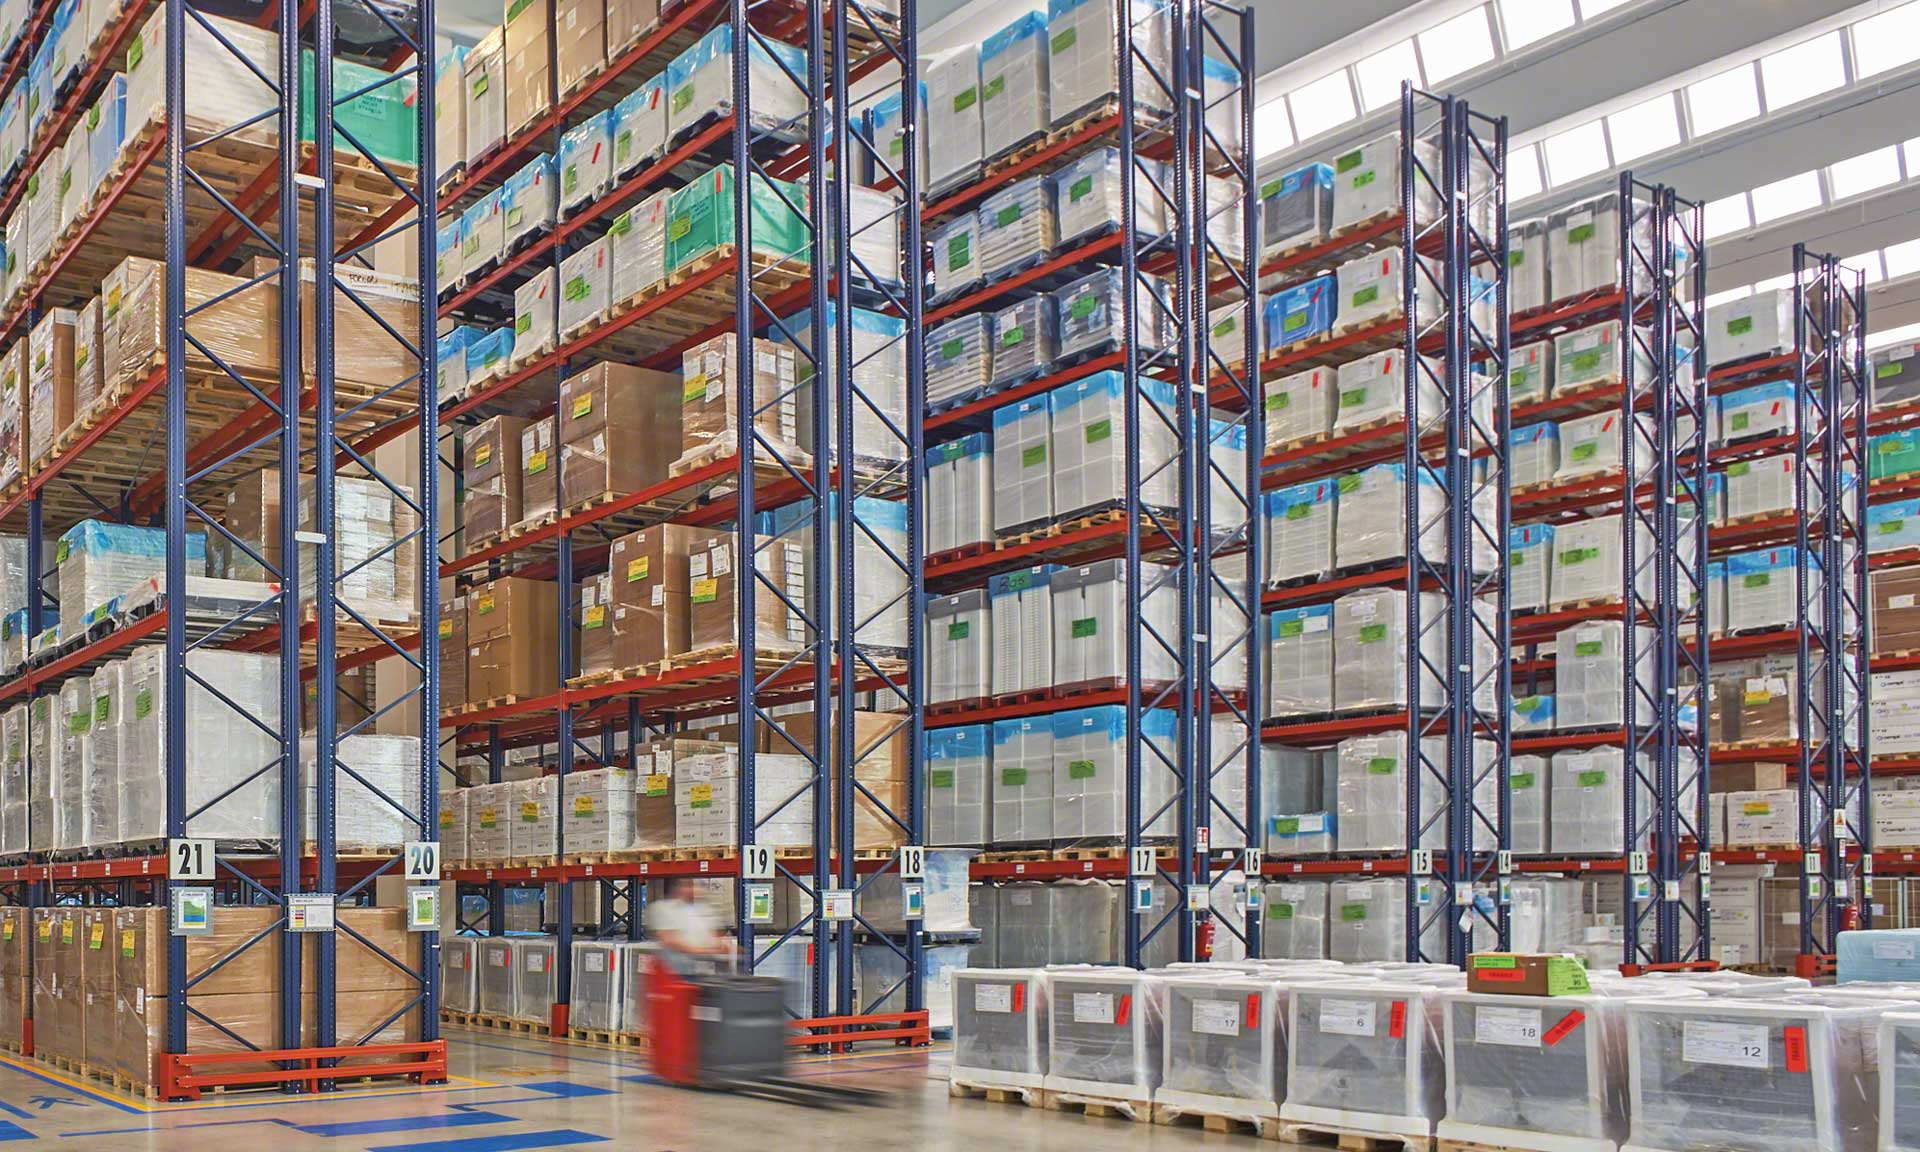 Chiggiato Transporti: earthquake-proof racks for pharmaceutical and medical products